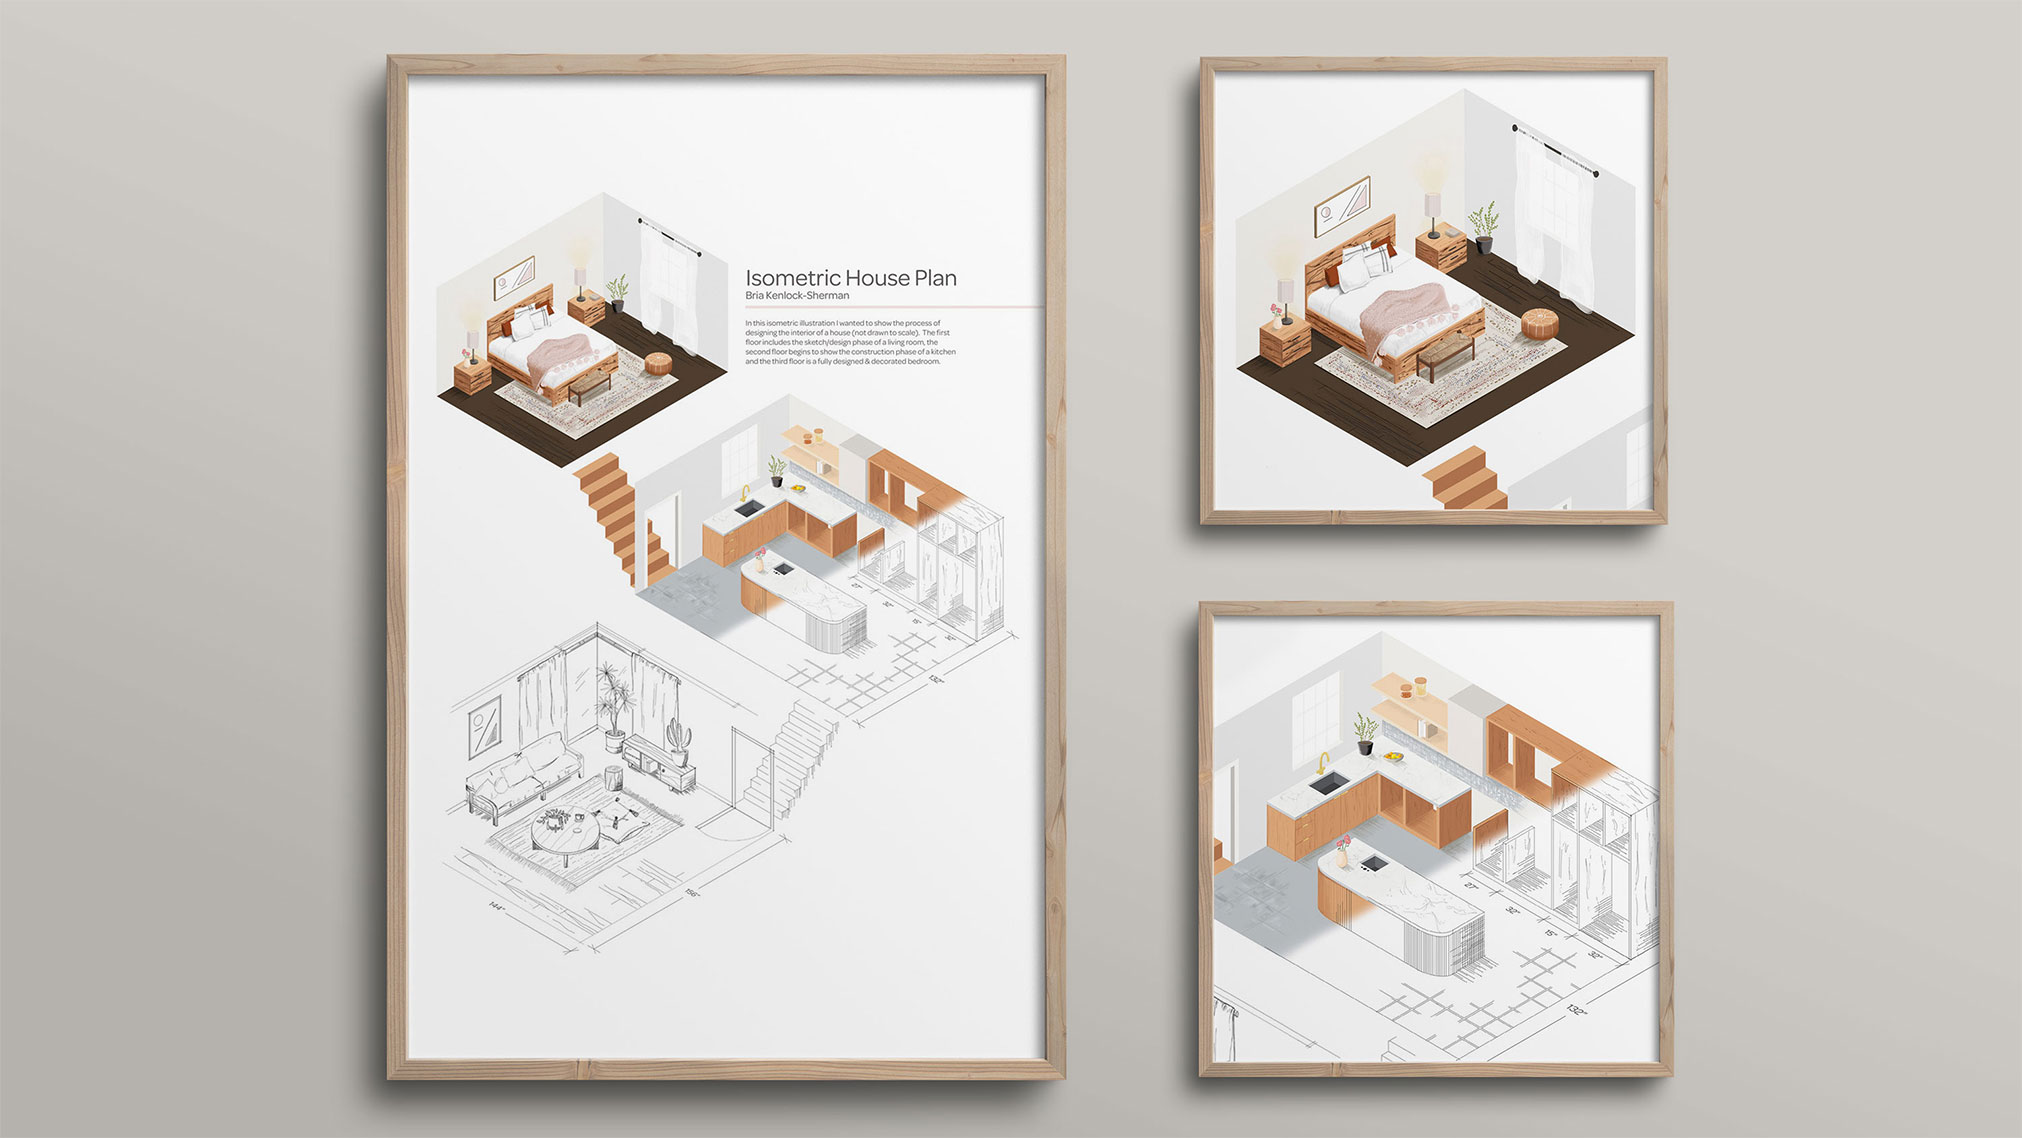 In this illustration, I was able to apply my interior decorating background to illustrate the process of a house being designed in isometric perspective. Drawn in Illustrator & Procreate.